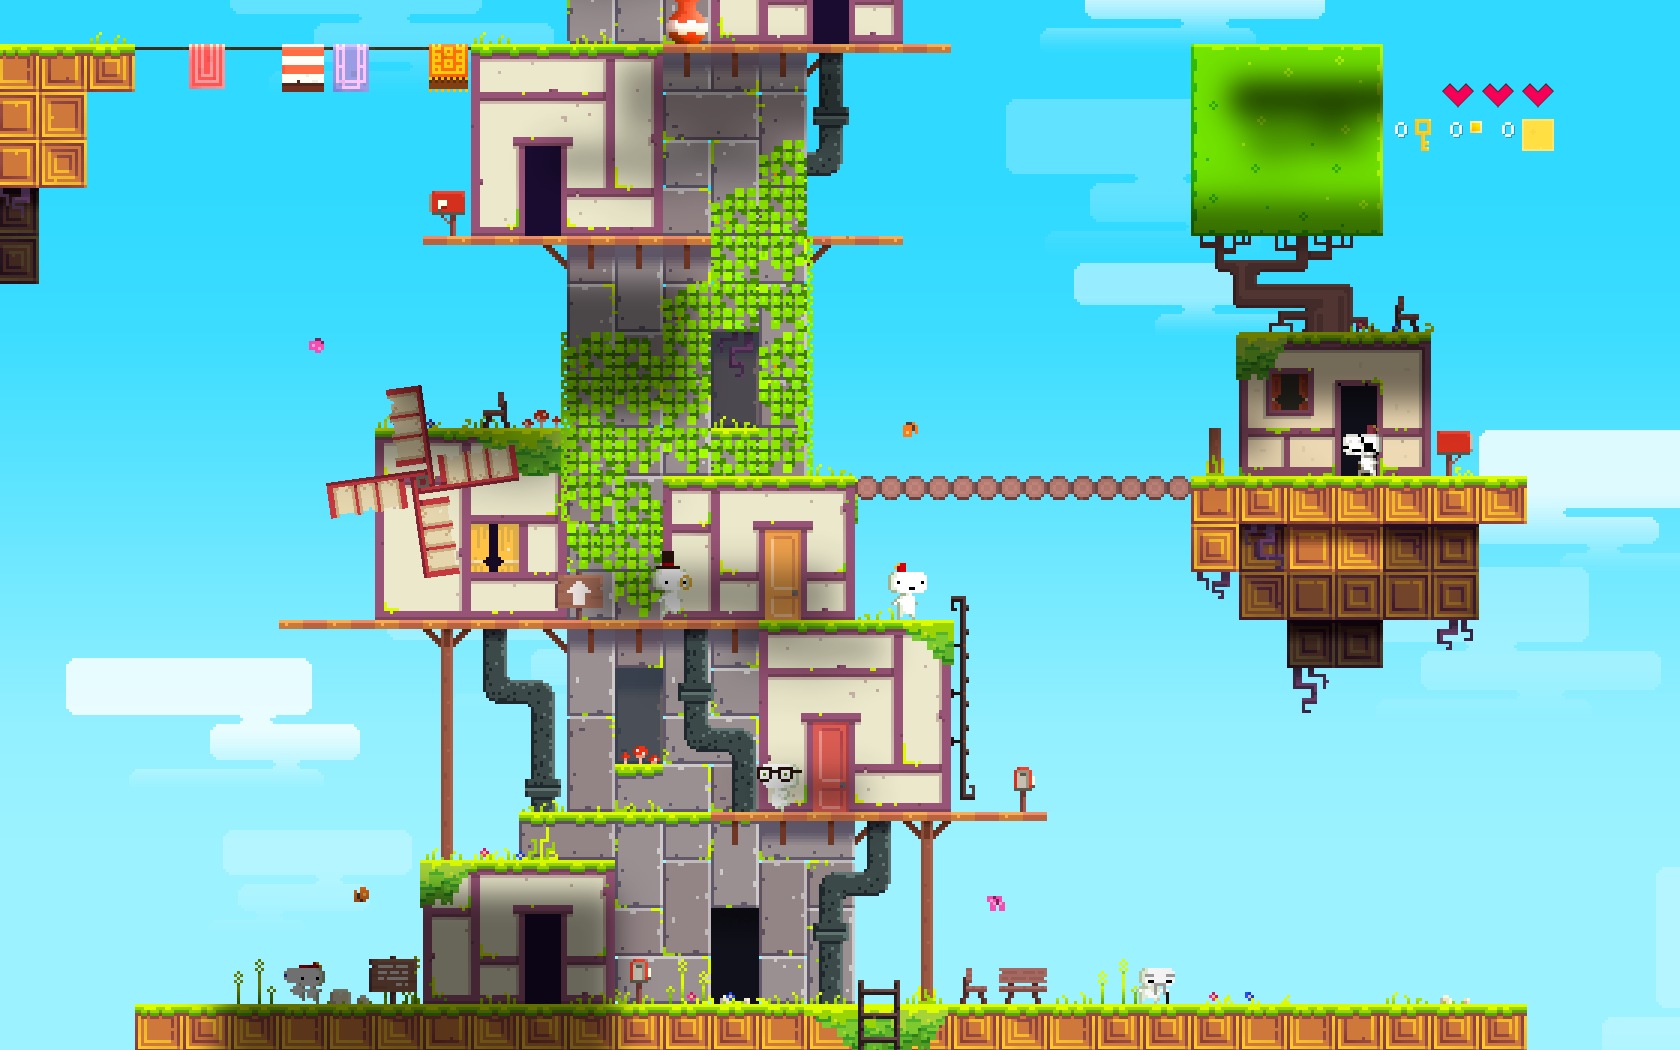 A First Look & Review of Popular Indie 2D Platformer FEZ